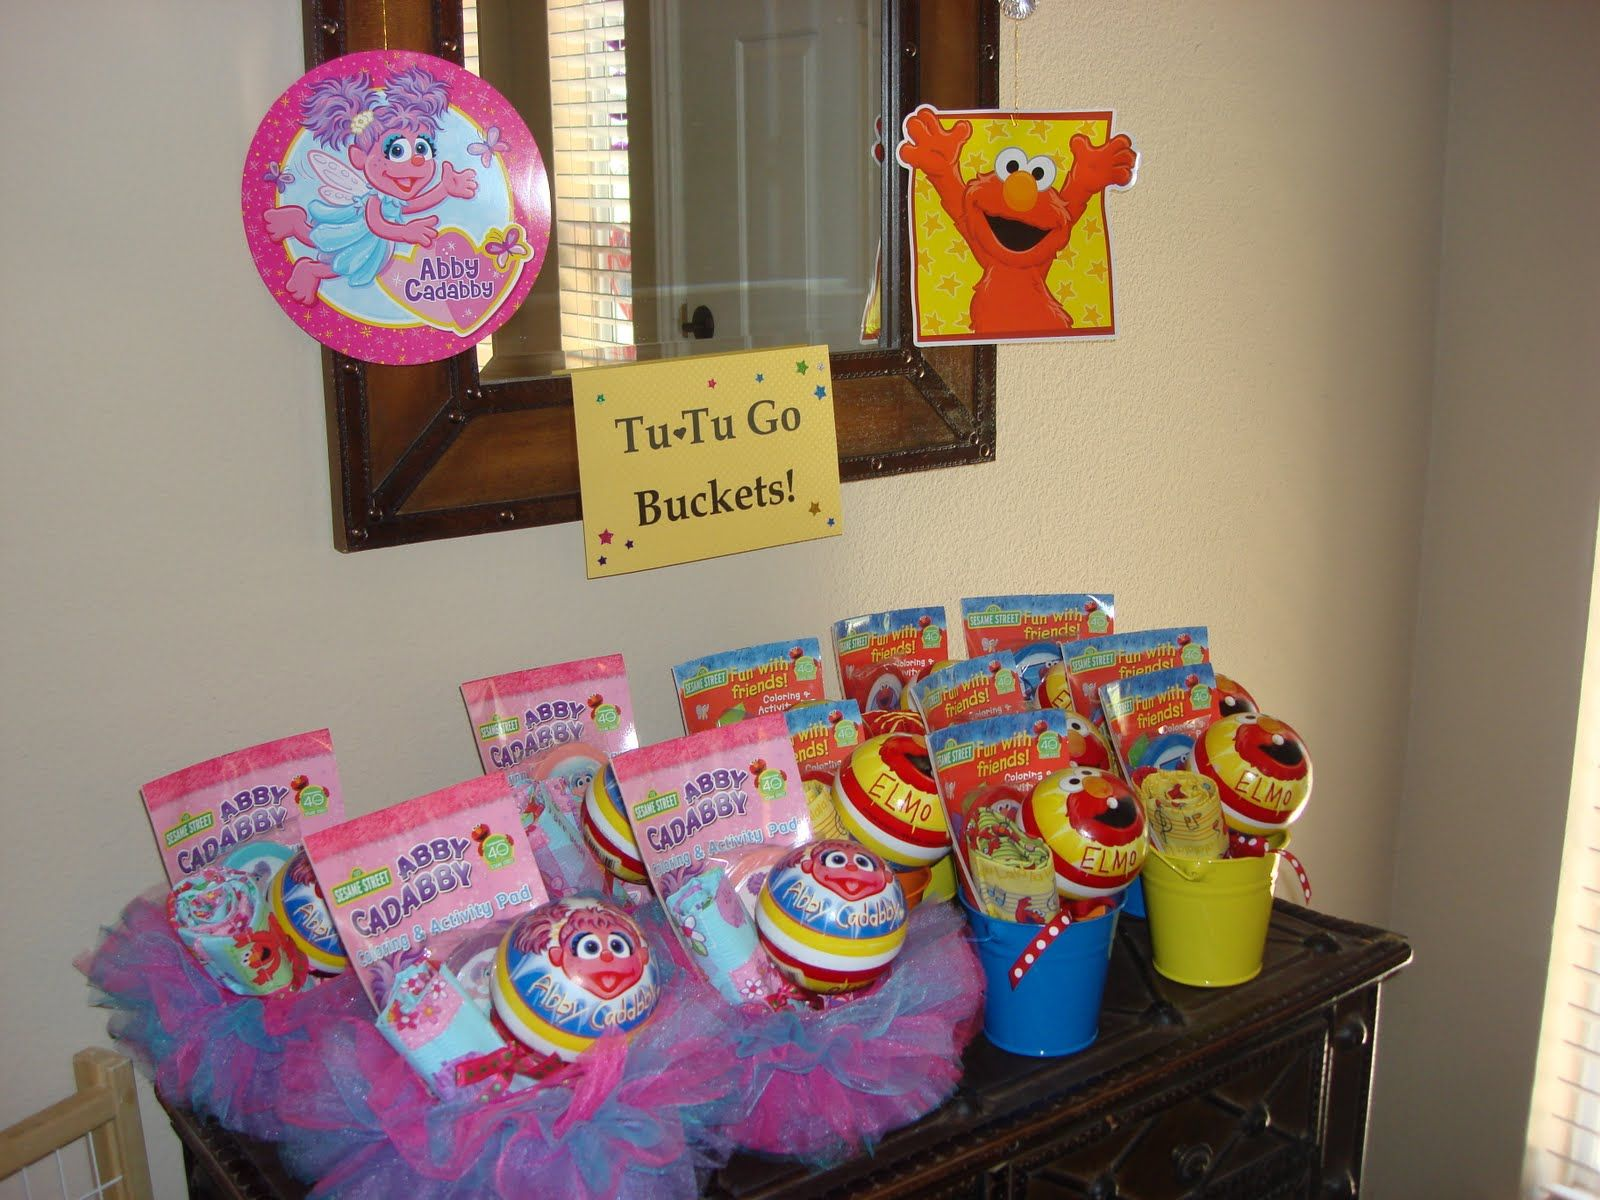 Abby Cadabby Party Decorations 1000 Images About Averys 1st B Day Ideas On Pinterest Mermaid